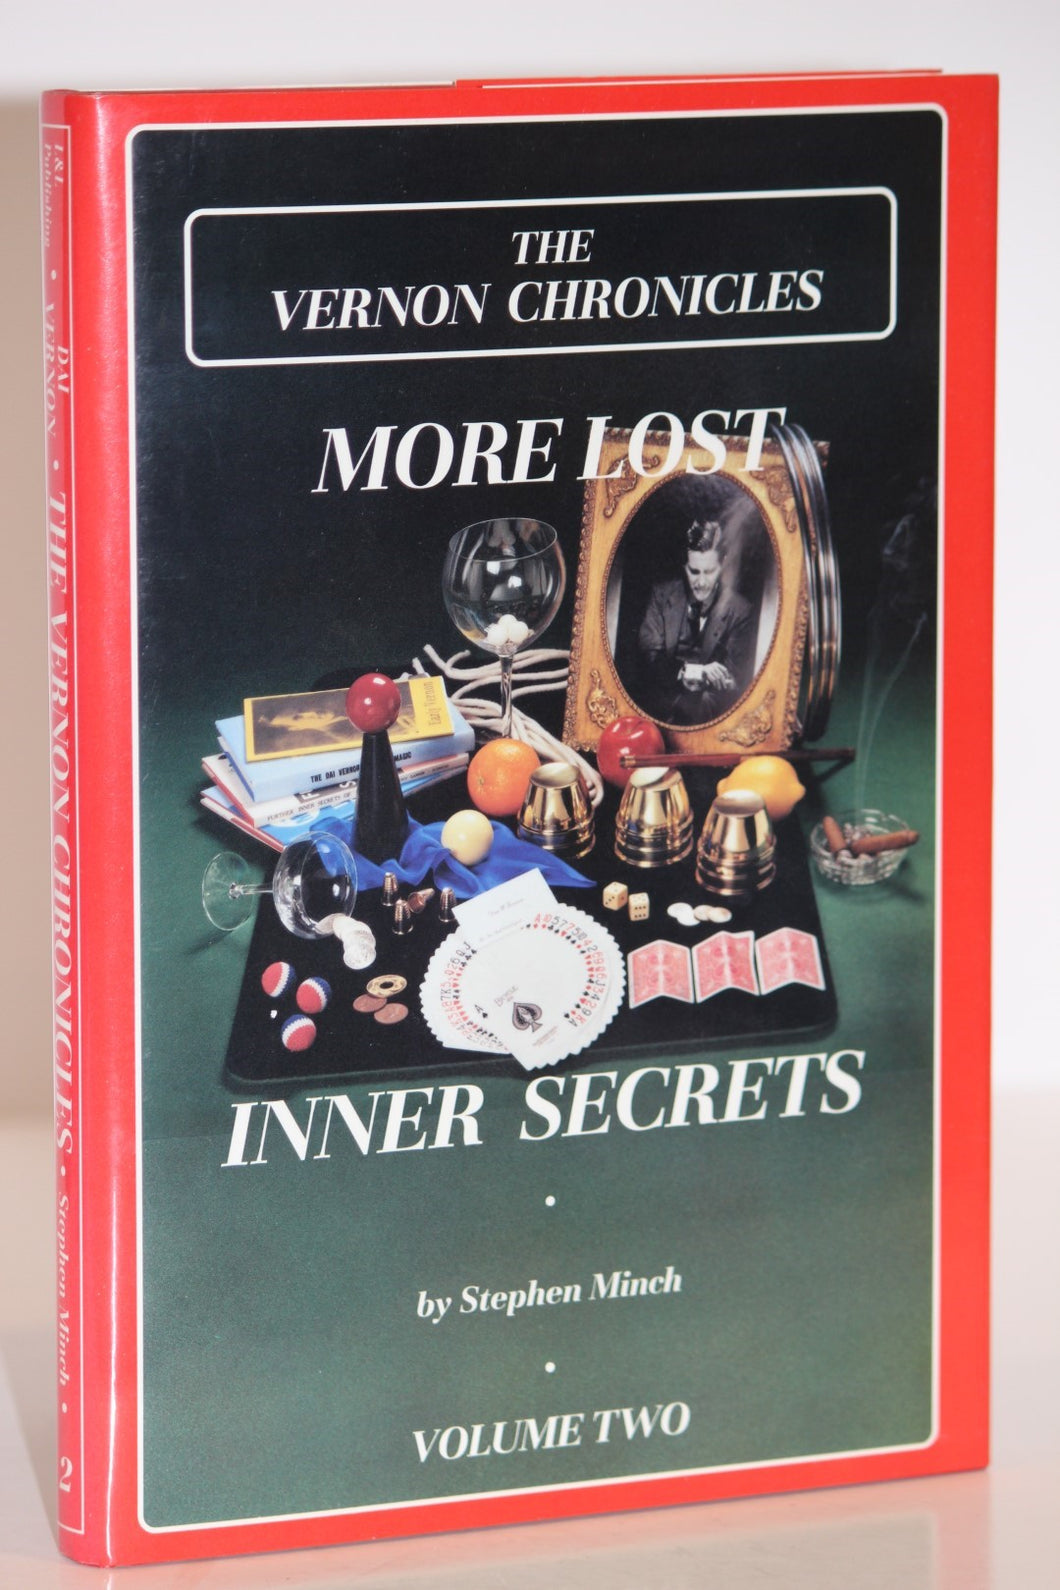 The Vernon Chronicles, More Lost Inner Secrets Vol.2  -  Minch